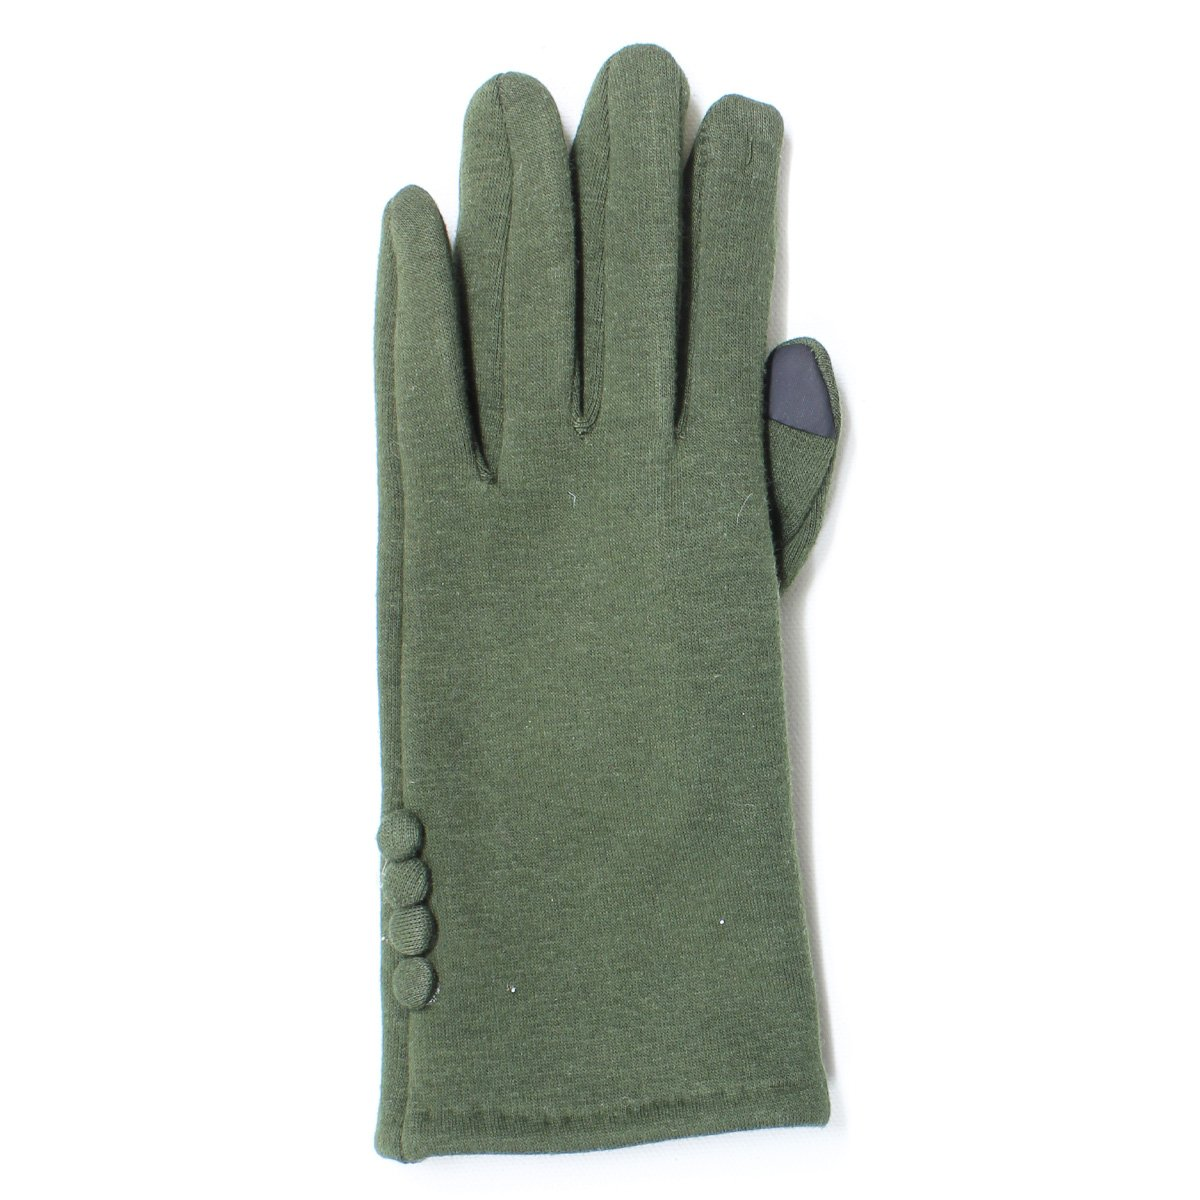 LL Womens Warm Touch Screen Gloves for Smartphone Texting- Fleece Lined, Many Styles (Small/Medium, OliveGreenButtons)